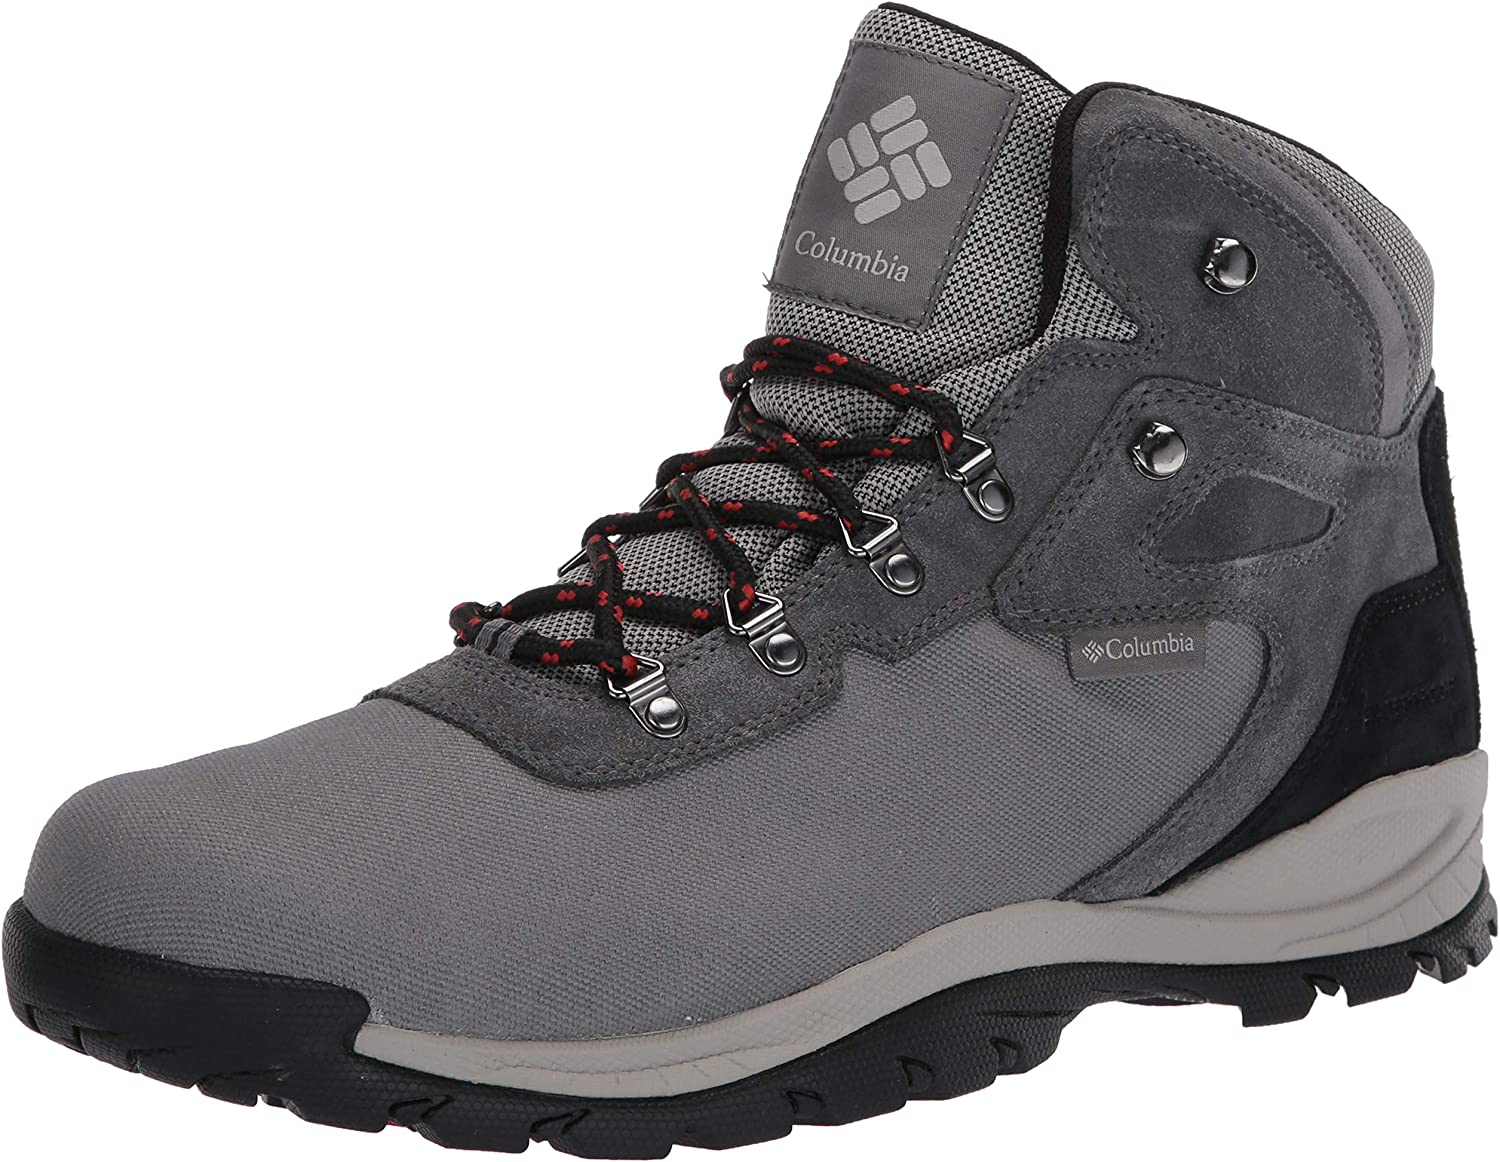 Columbia Men's Newton Ridge Lt Waterproof Hiking Boots